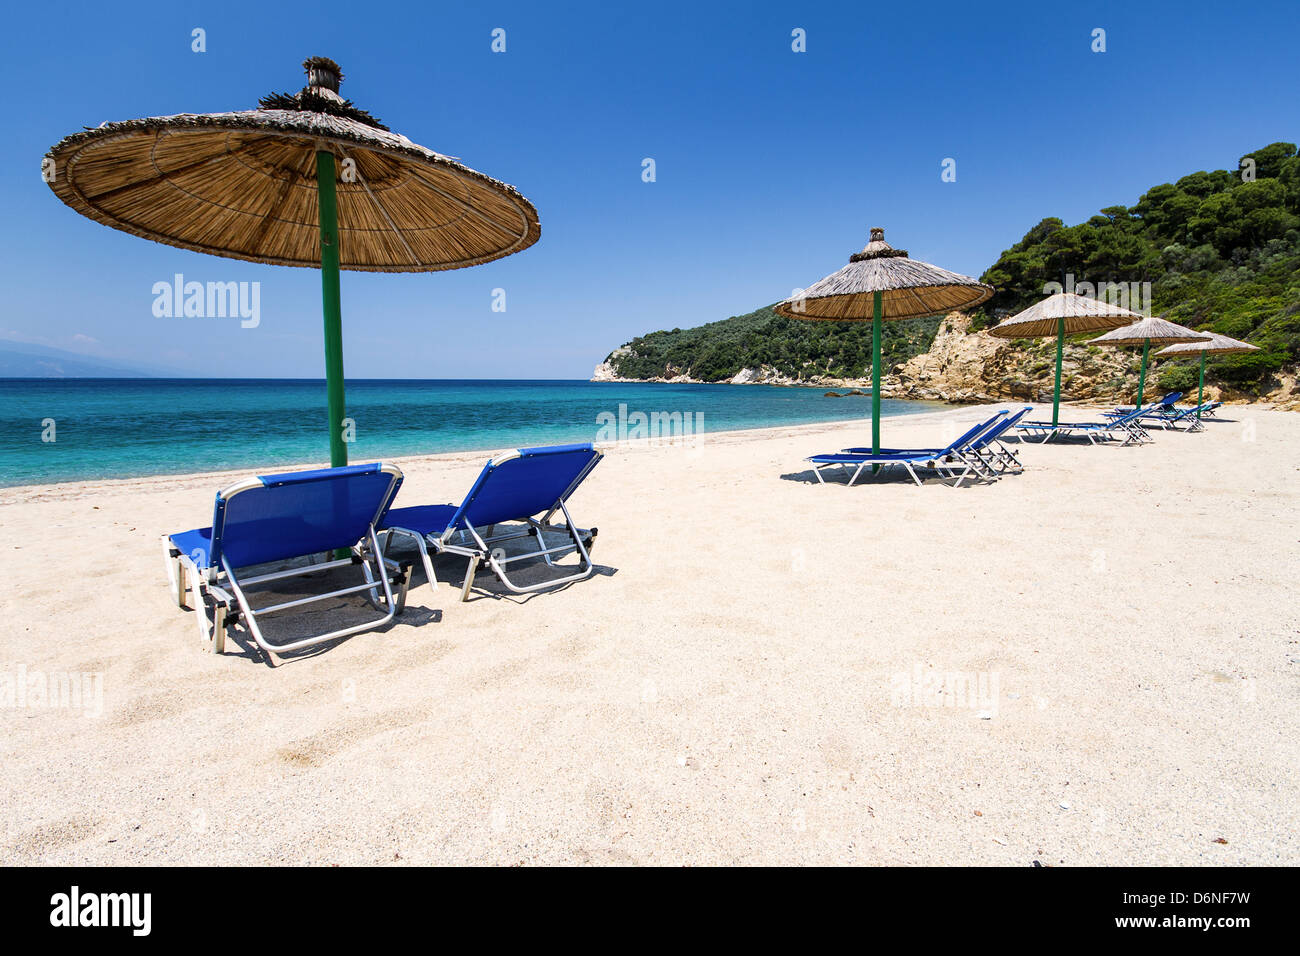 Sunbed and umbrella on the sunny beach. - Stock Image